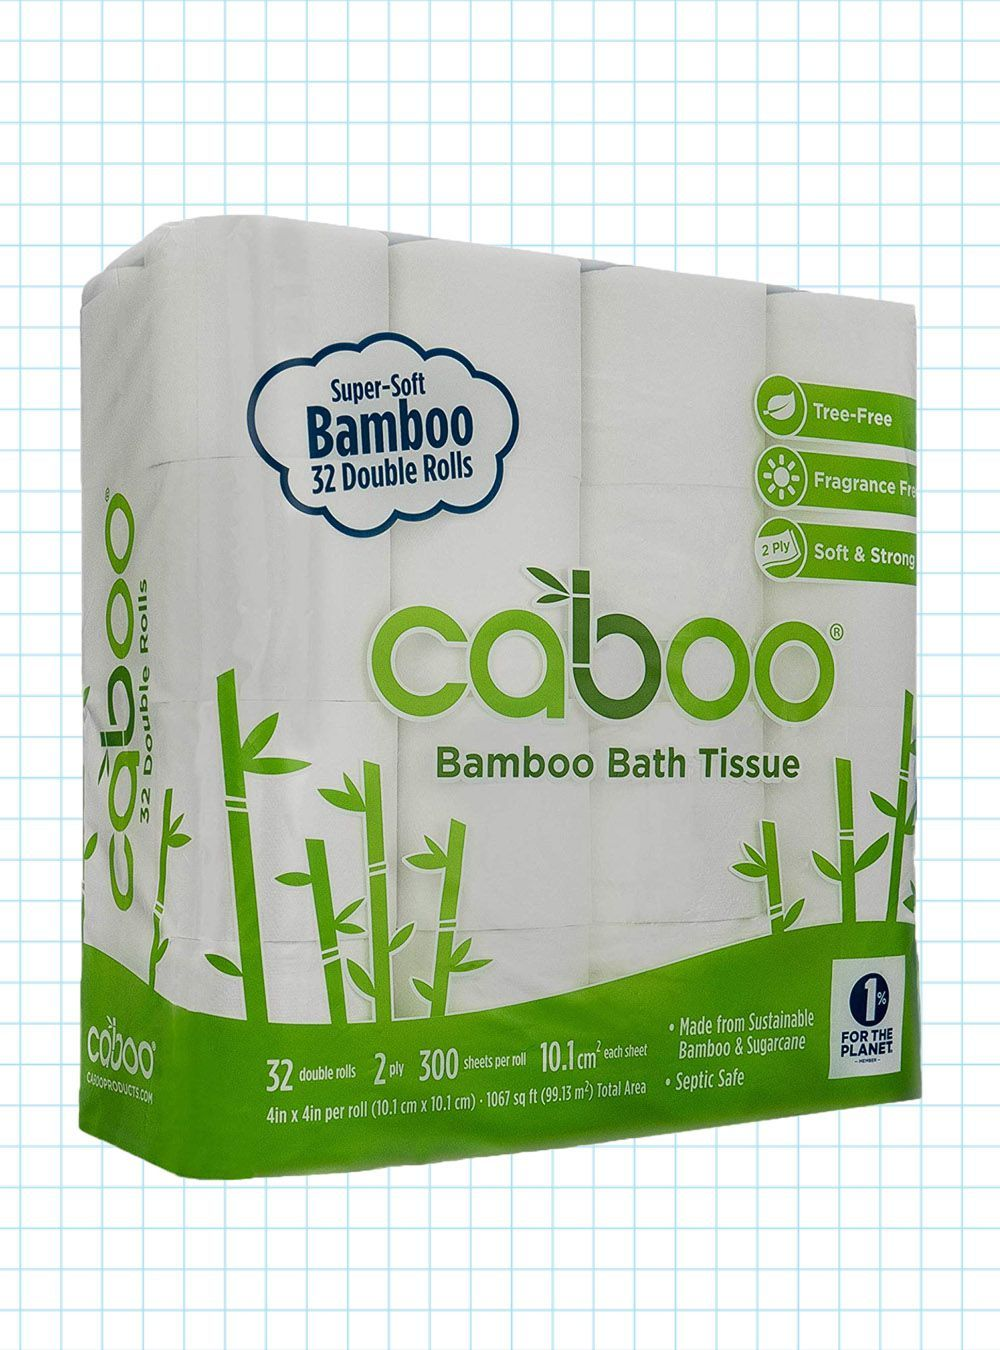 Tree-Free Bamboo Toilet Paper